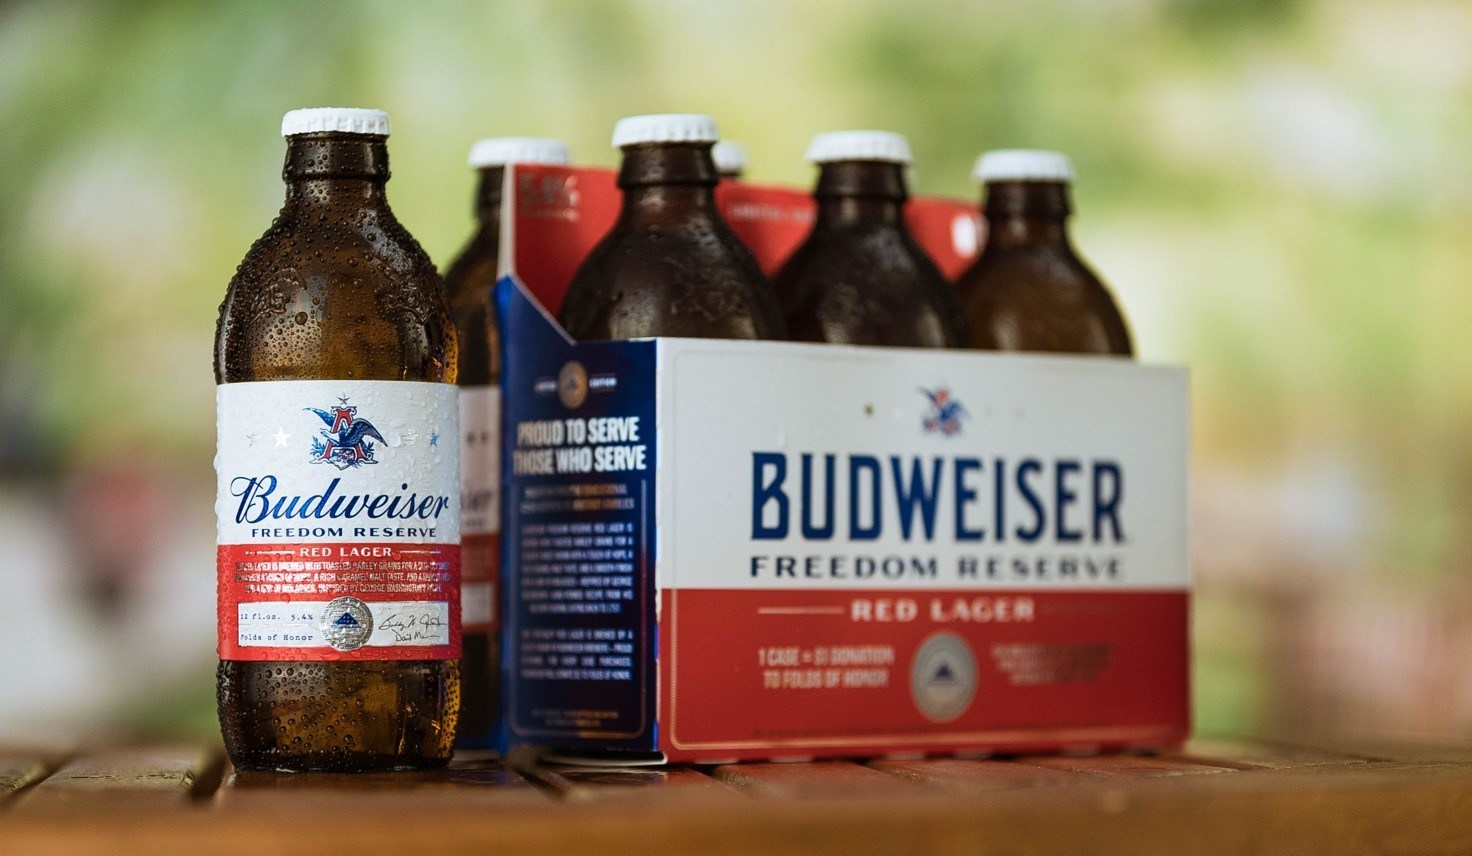 BUDWEISER CDL WINDOWS 10 DOWNLOAD DRIVER